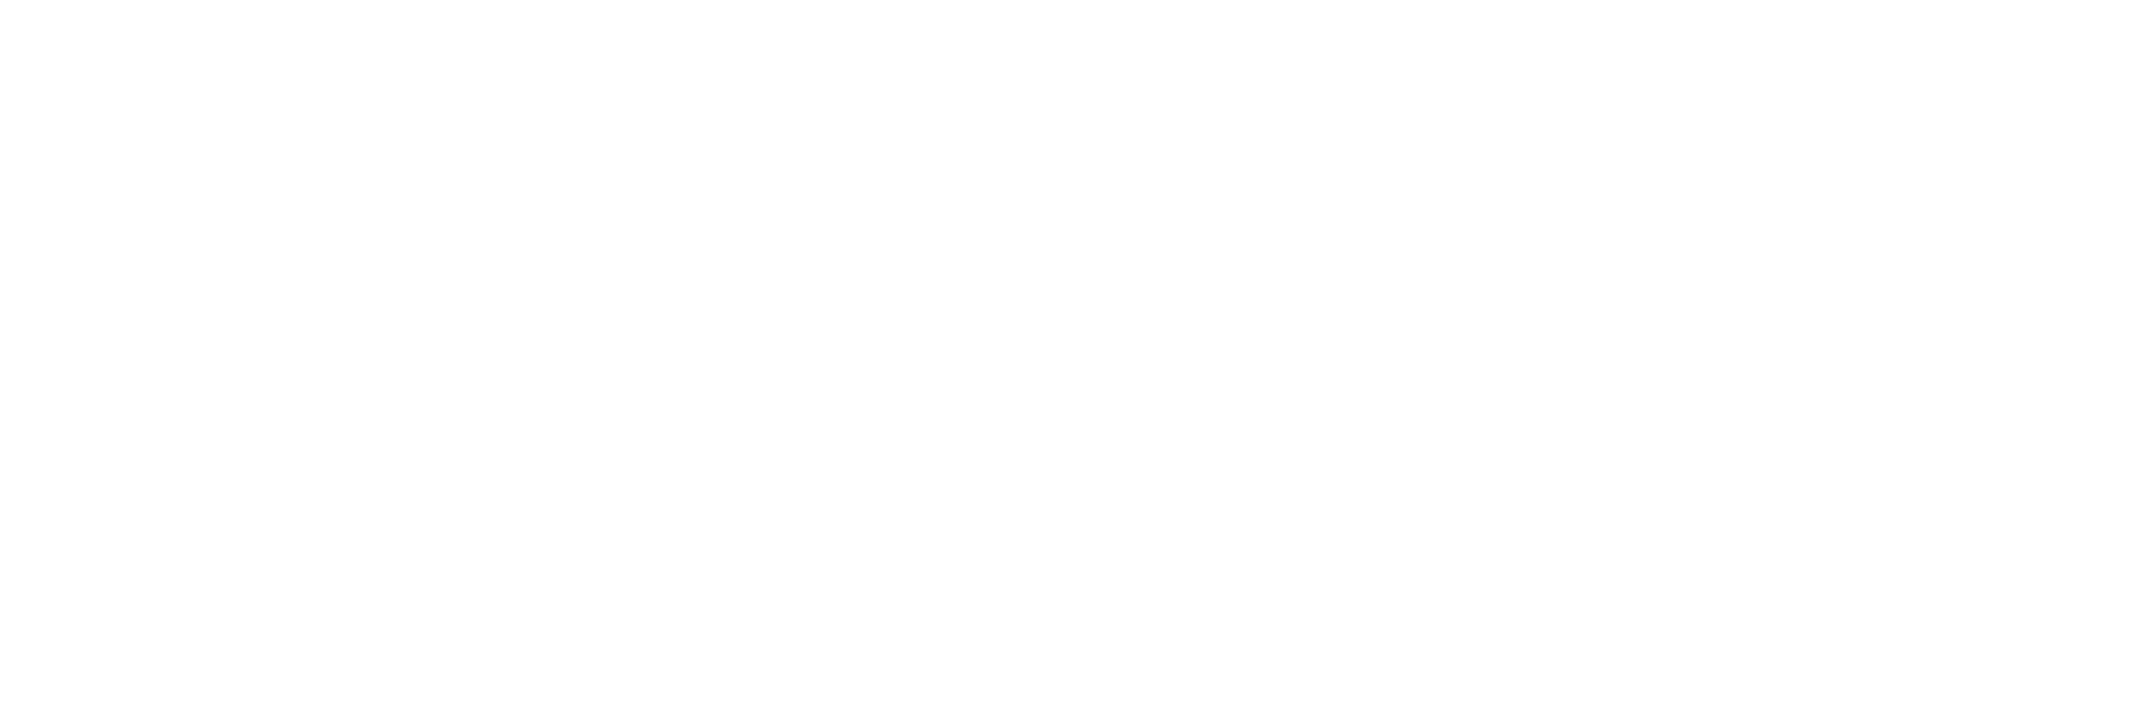 https://csuitelegal.co.za/wp-content/uploads/2021/05/footer.png